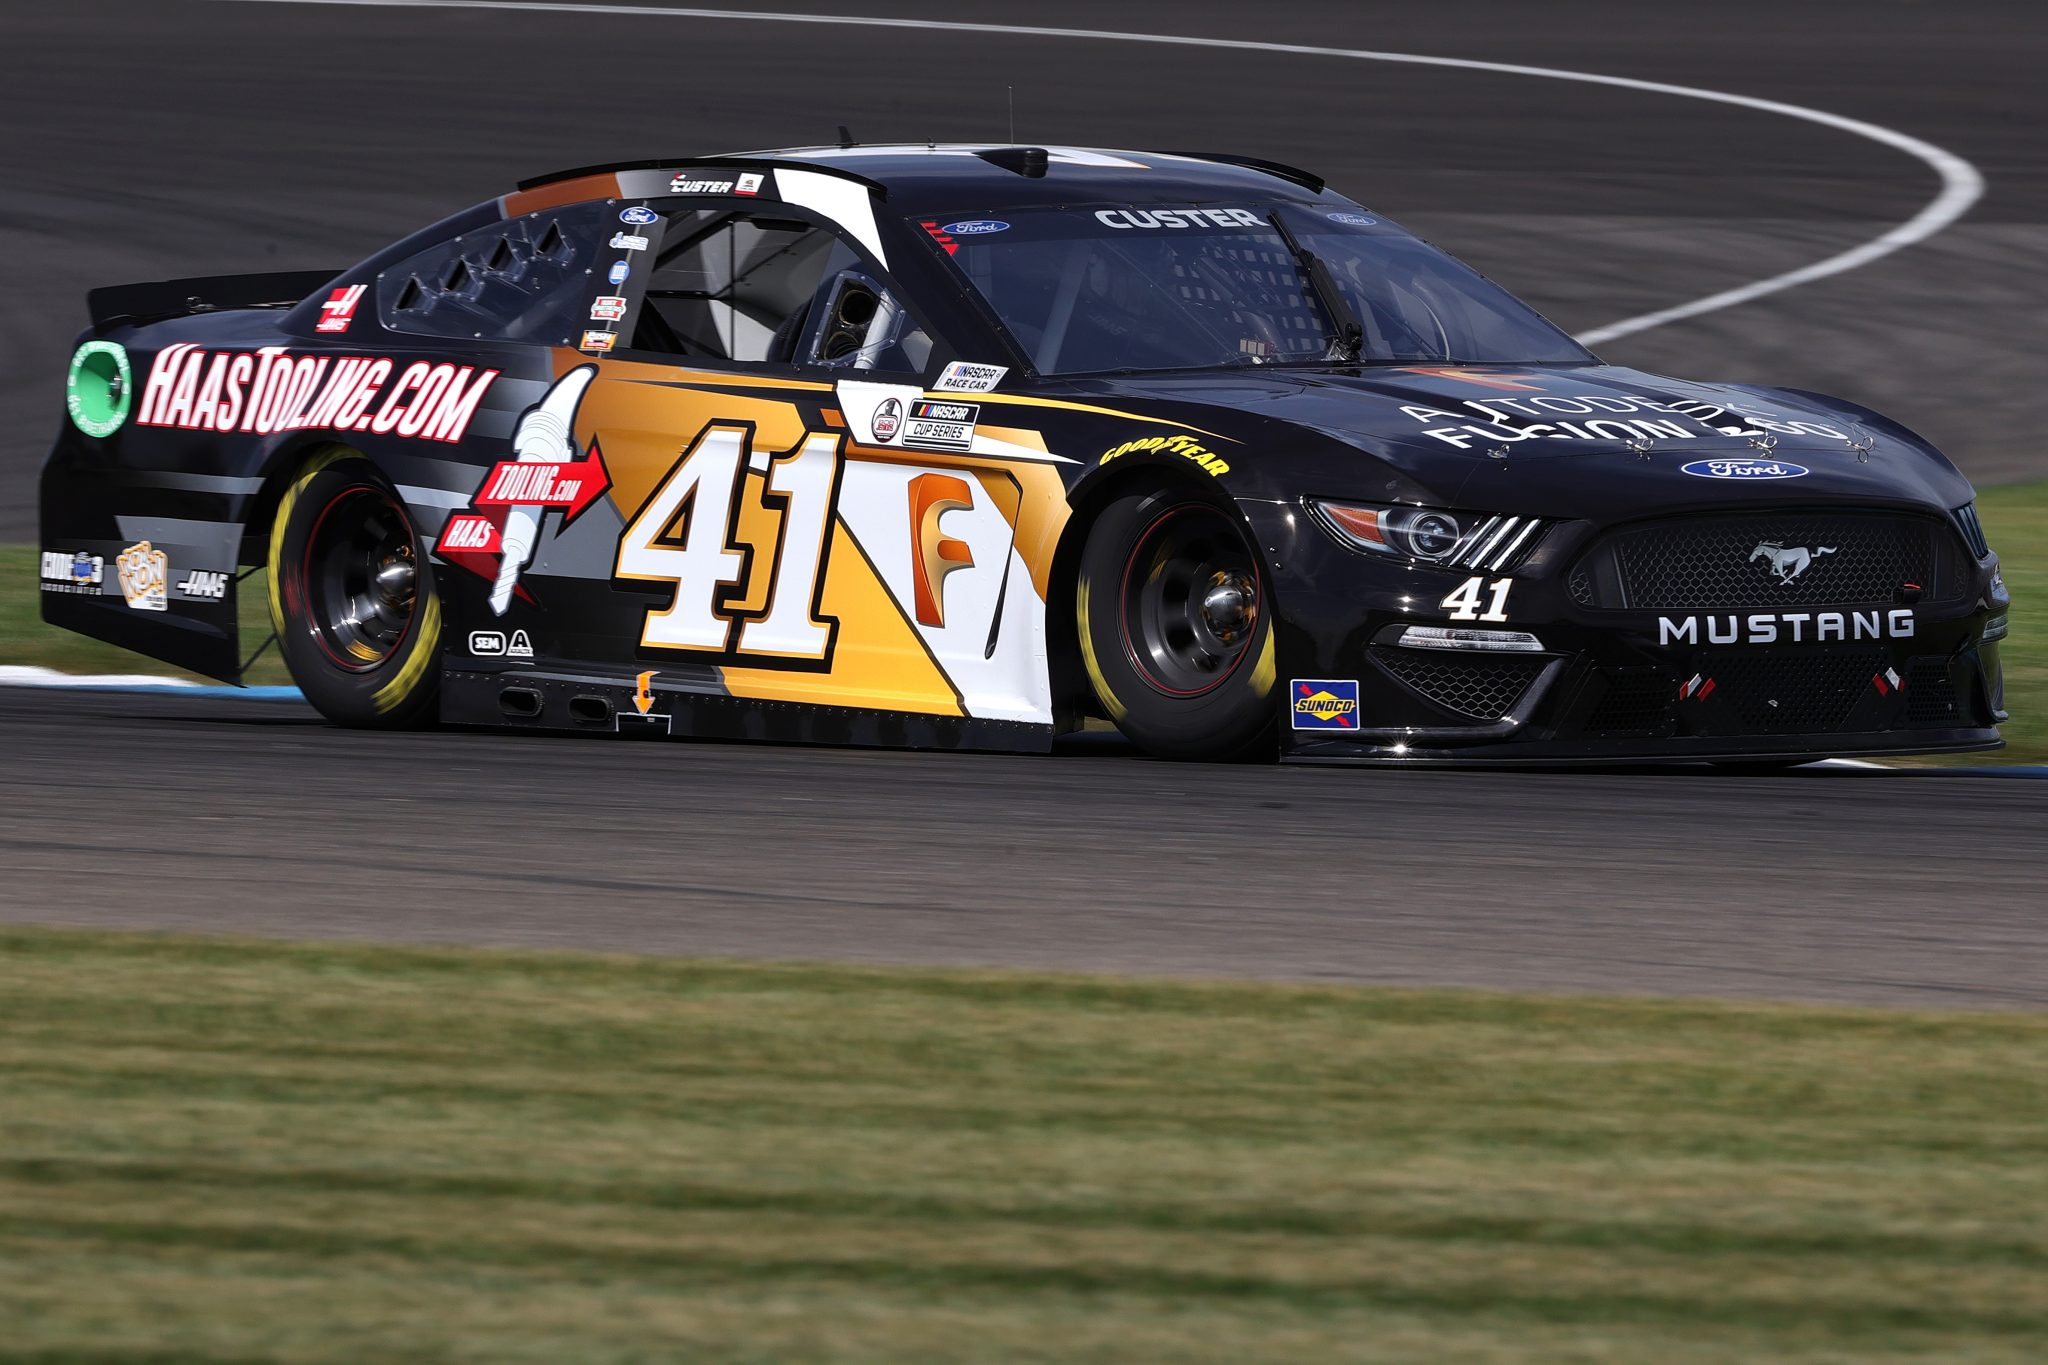 INDIANAPOLIS, INDIANA - AUGUST 14: Cole Custer, driver of the #41 Autodesk/HaasTooling.com Ford, drives during practice for the NASCAR Cup Series Verizon 200 at the Brickyard at Indianapolis Motor Speedway on August 14, 2021 in Indianapolis, Indiana. (Photo by Stacy Revere/Getty Images)   Getty Images